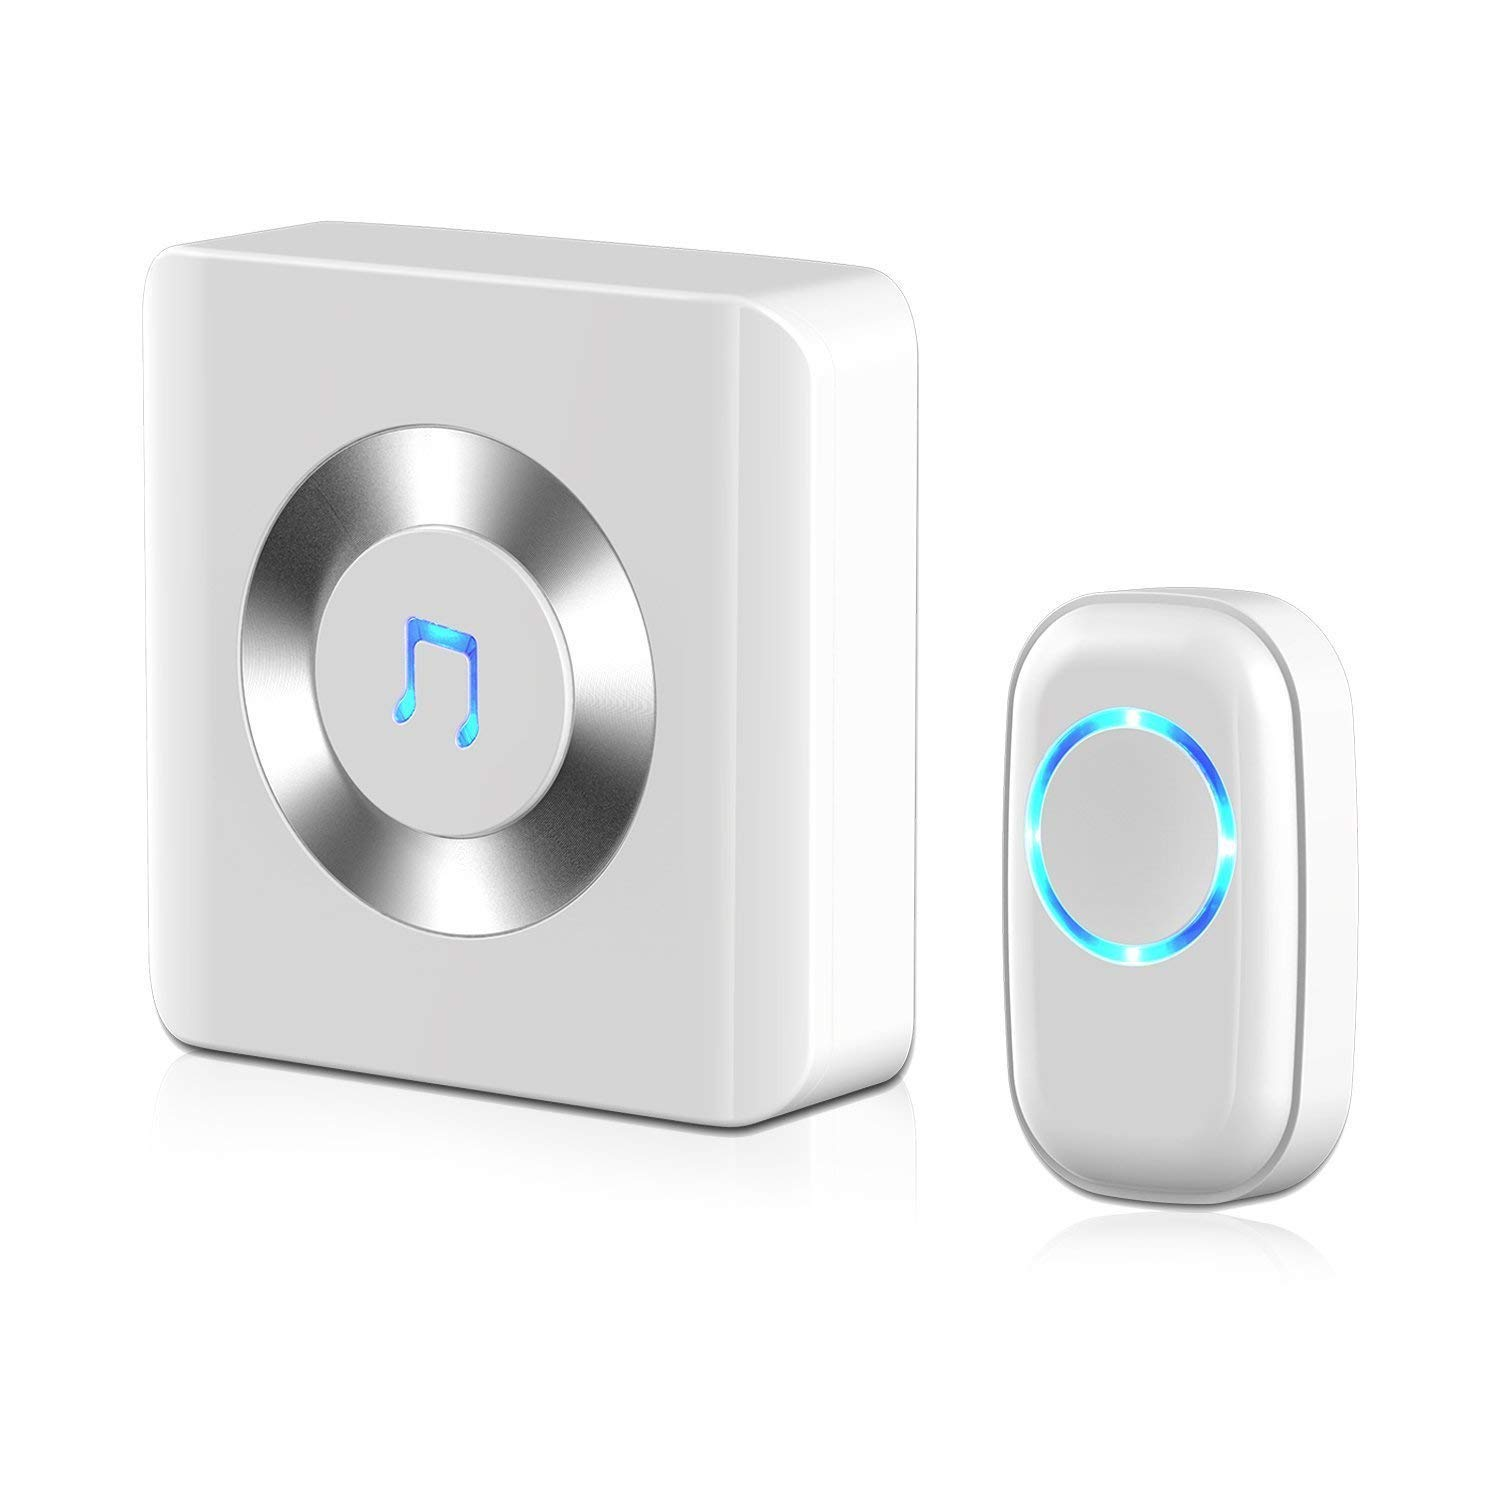 DLINMEI Wireless Remote Doorbell Alarm System Basic Starter Kit Includes 1 Plug-in Receiver And 1 Remote Button Transmitter White